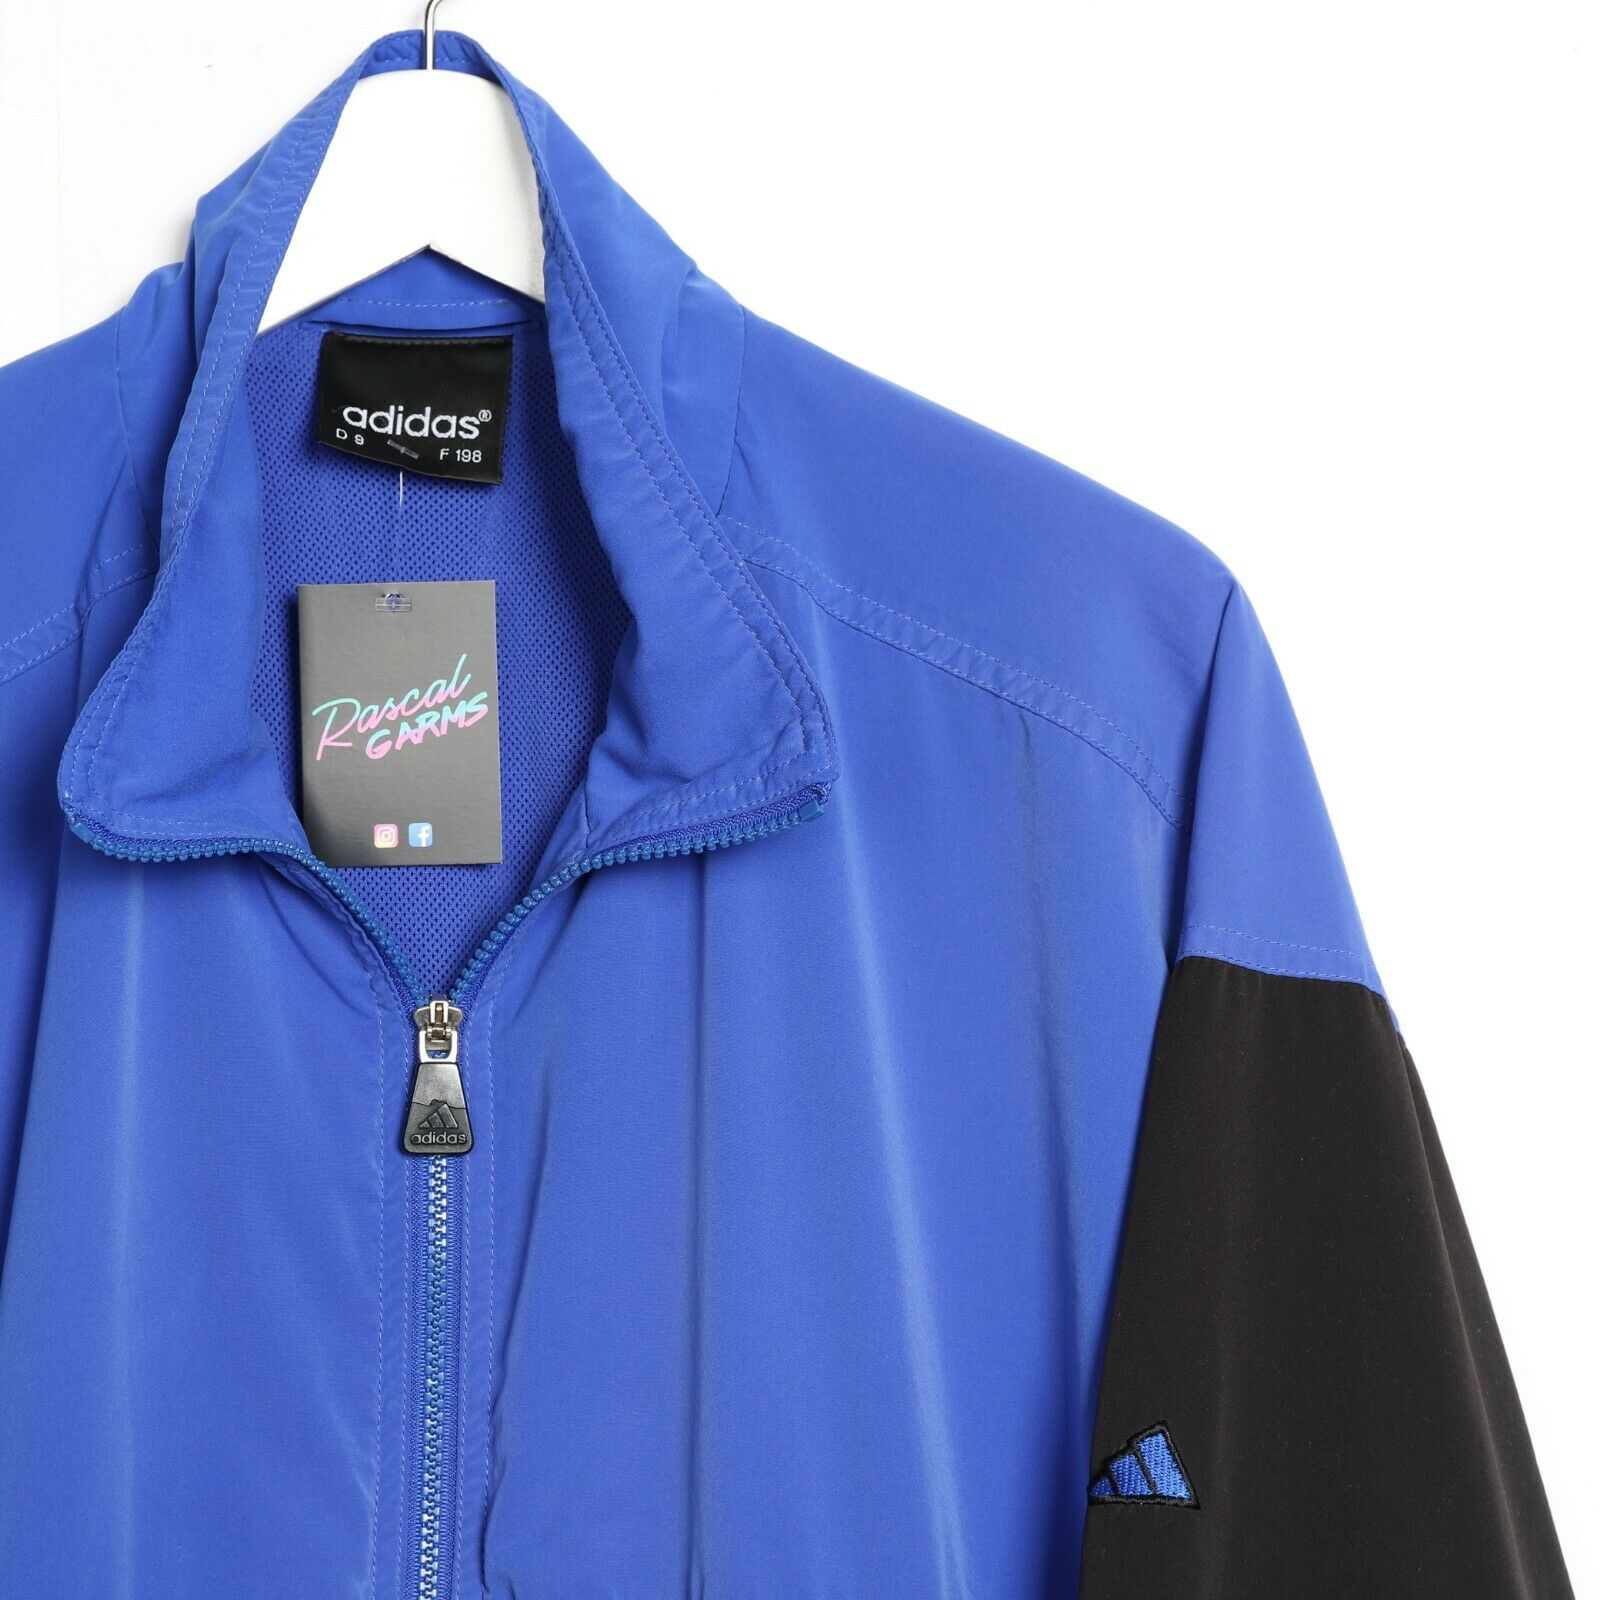 Vintage 80s ADIDAS Zip Up Windbreaker Jacket Blue Black XL